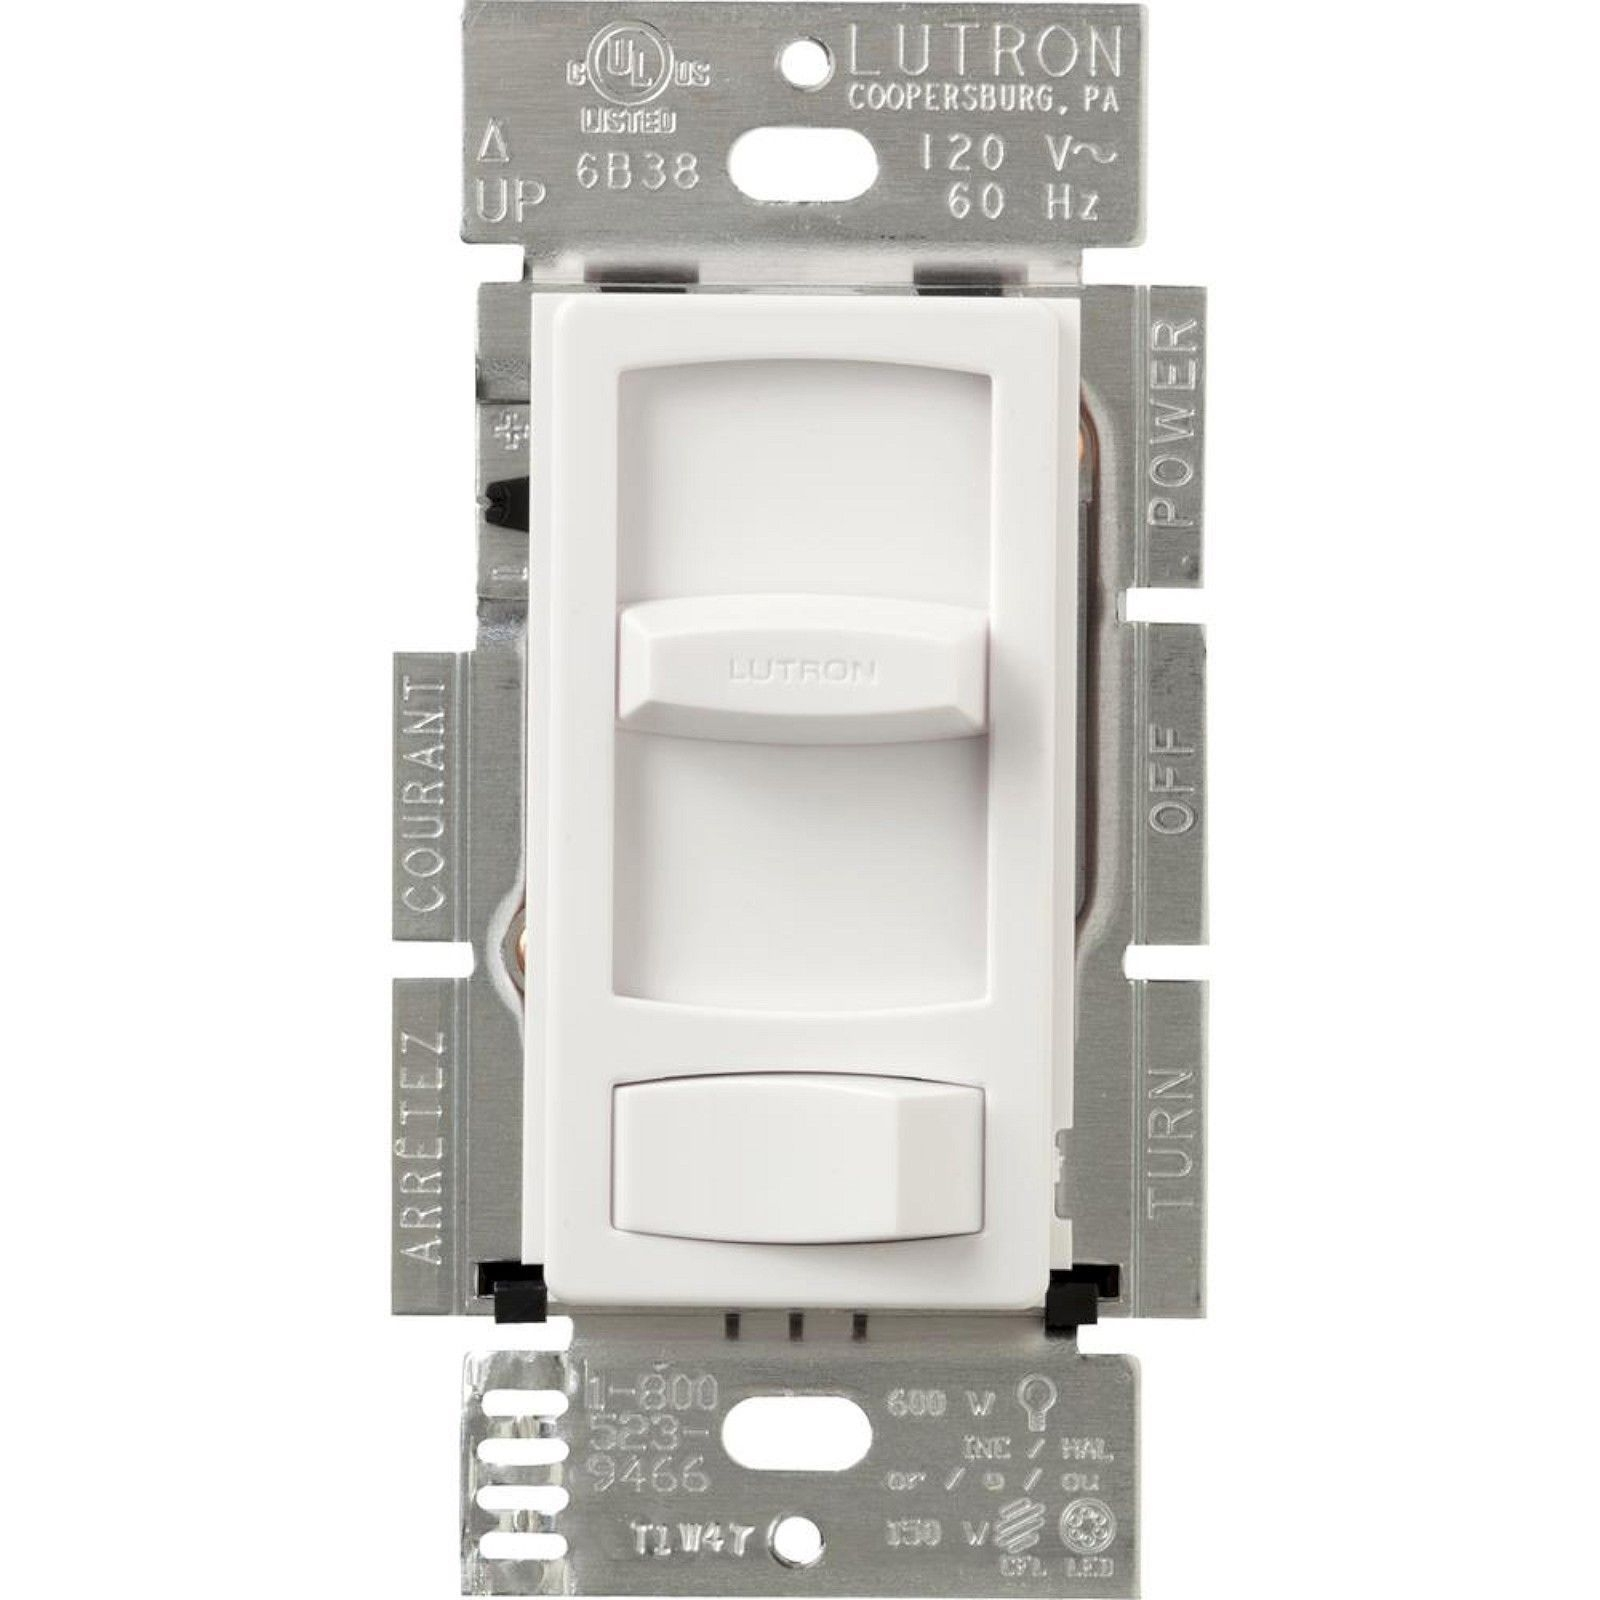 hight resolution of lutron maestro macl 153m wiring diagram lutron skylark contour single pole 3 way dimmable cfl